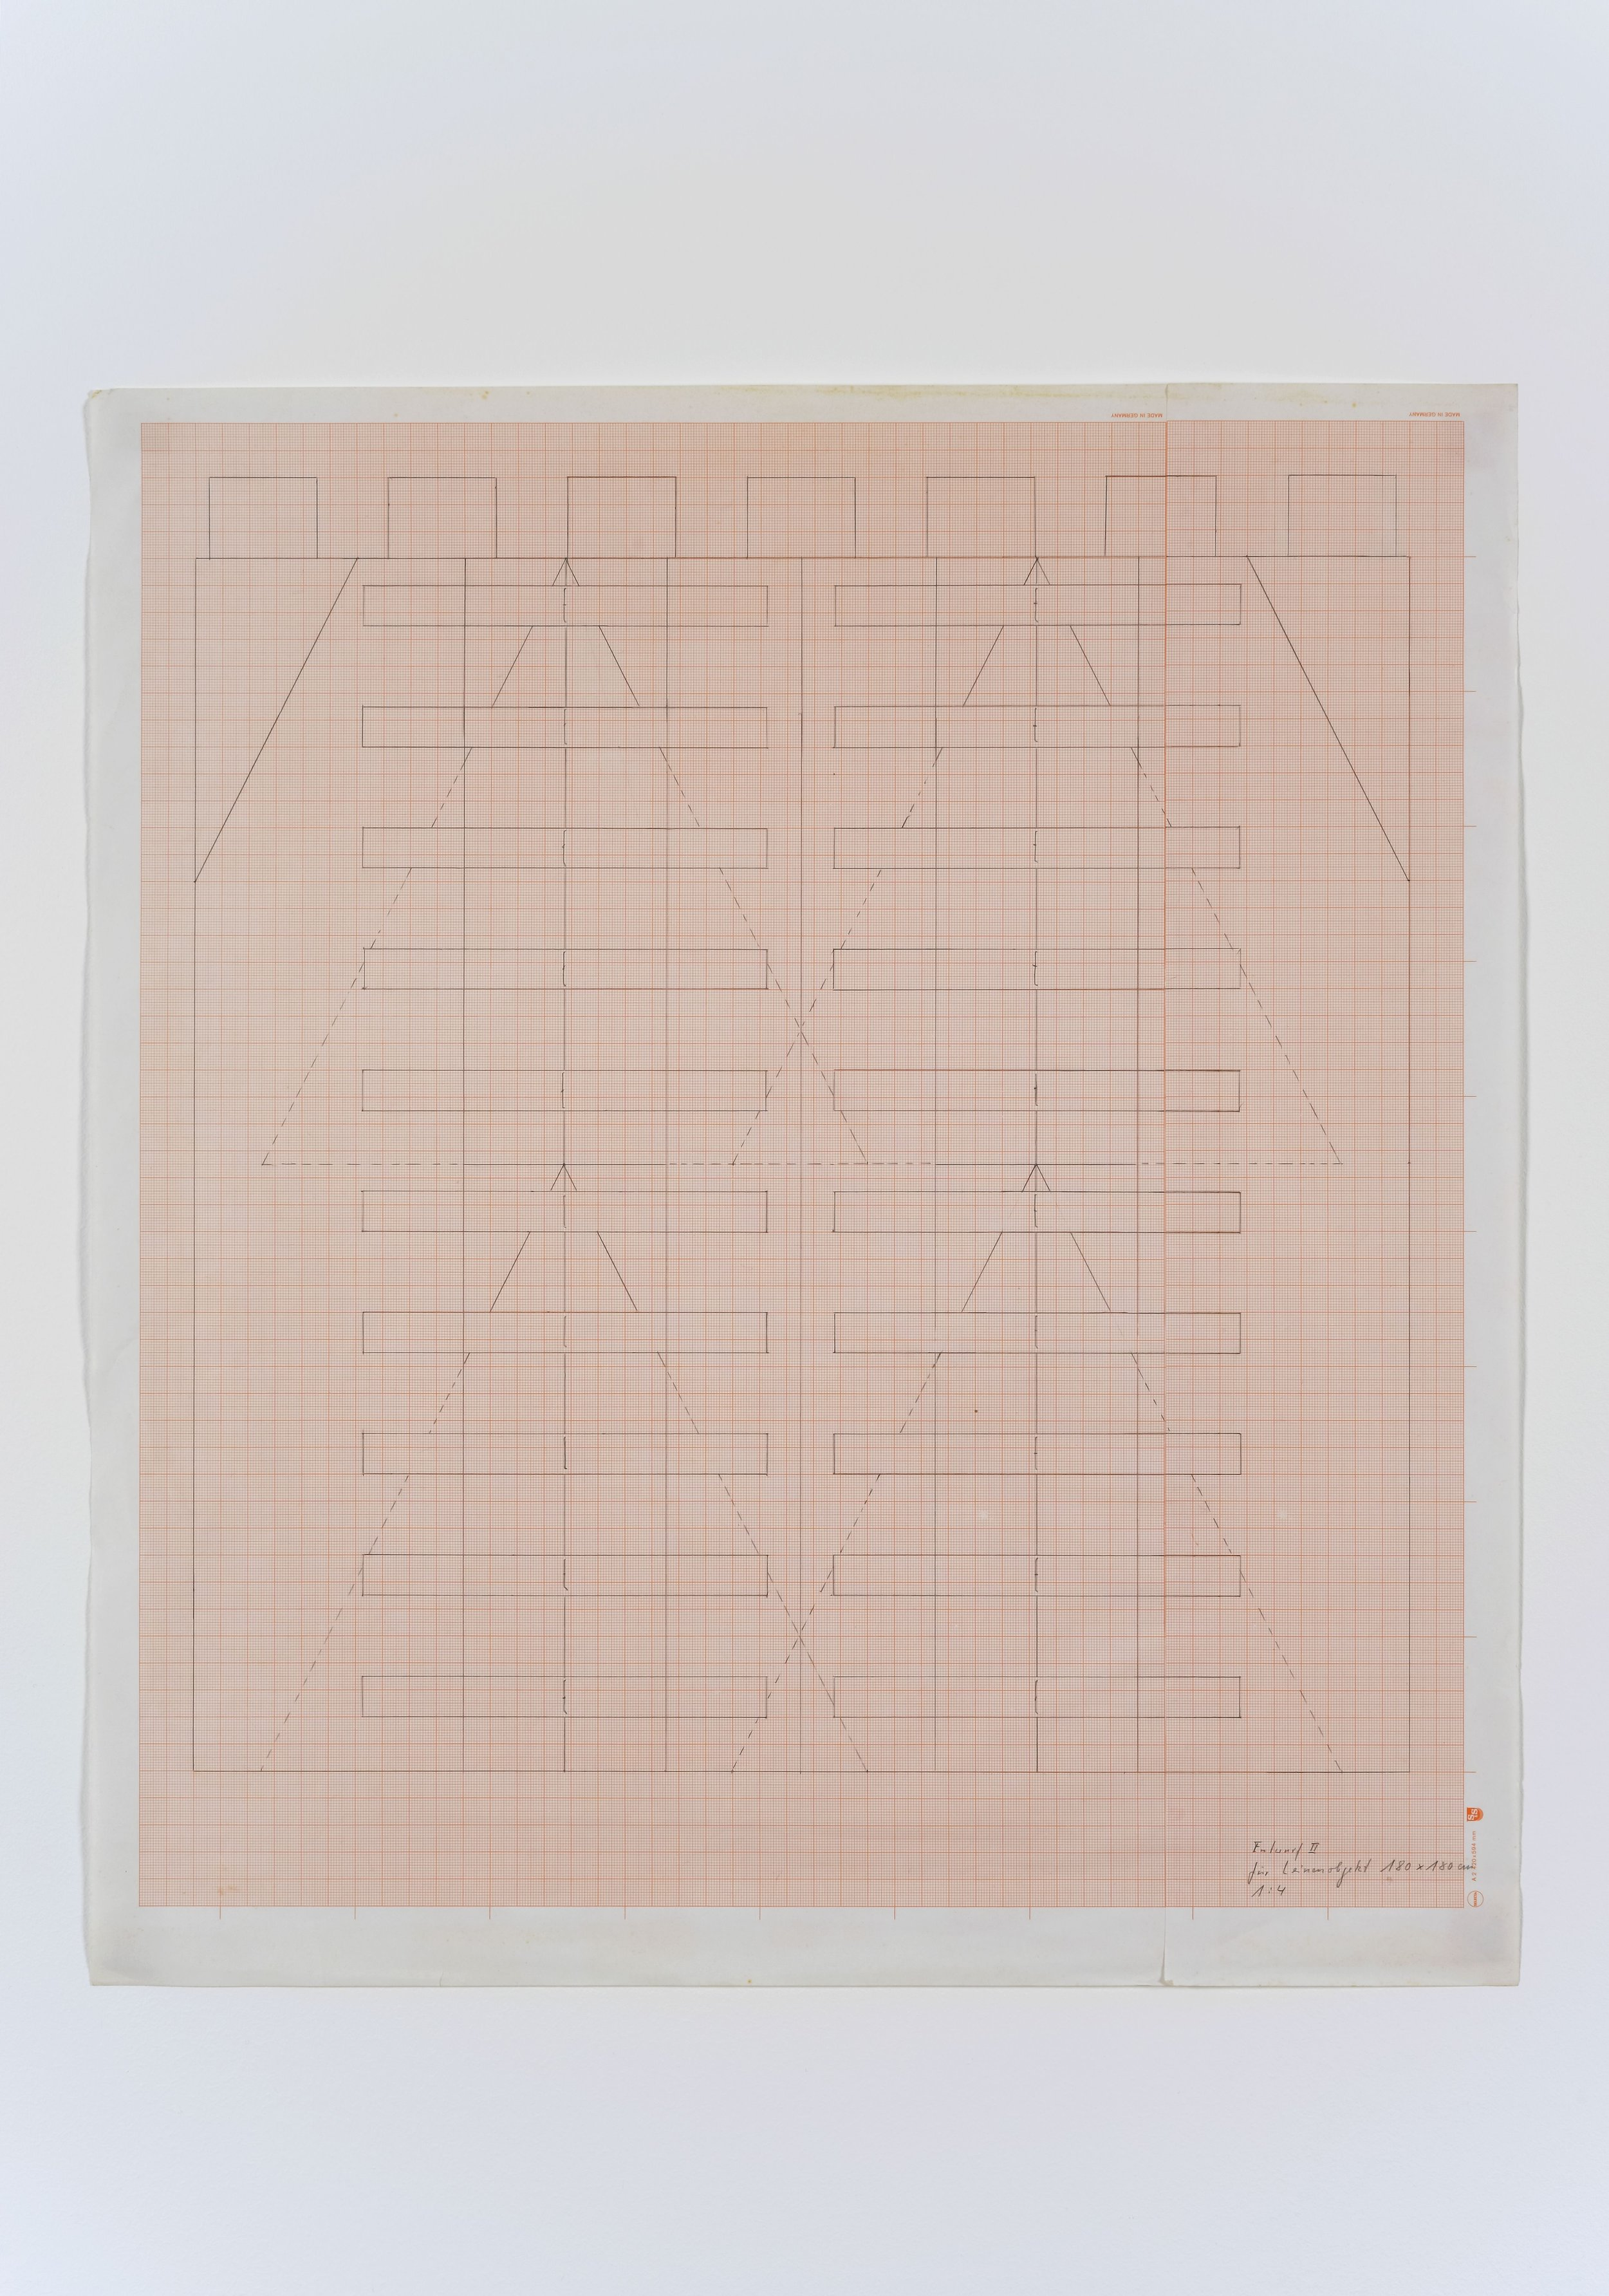 Friedrich Teepe  Untitled , early 1980's construction drawing on scale paper, 57 x 65 cm, framed